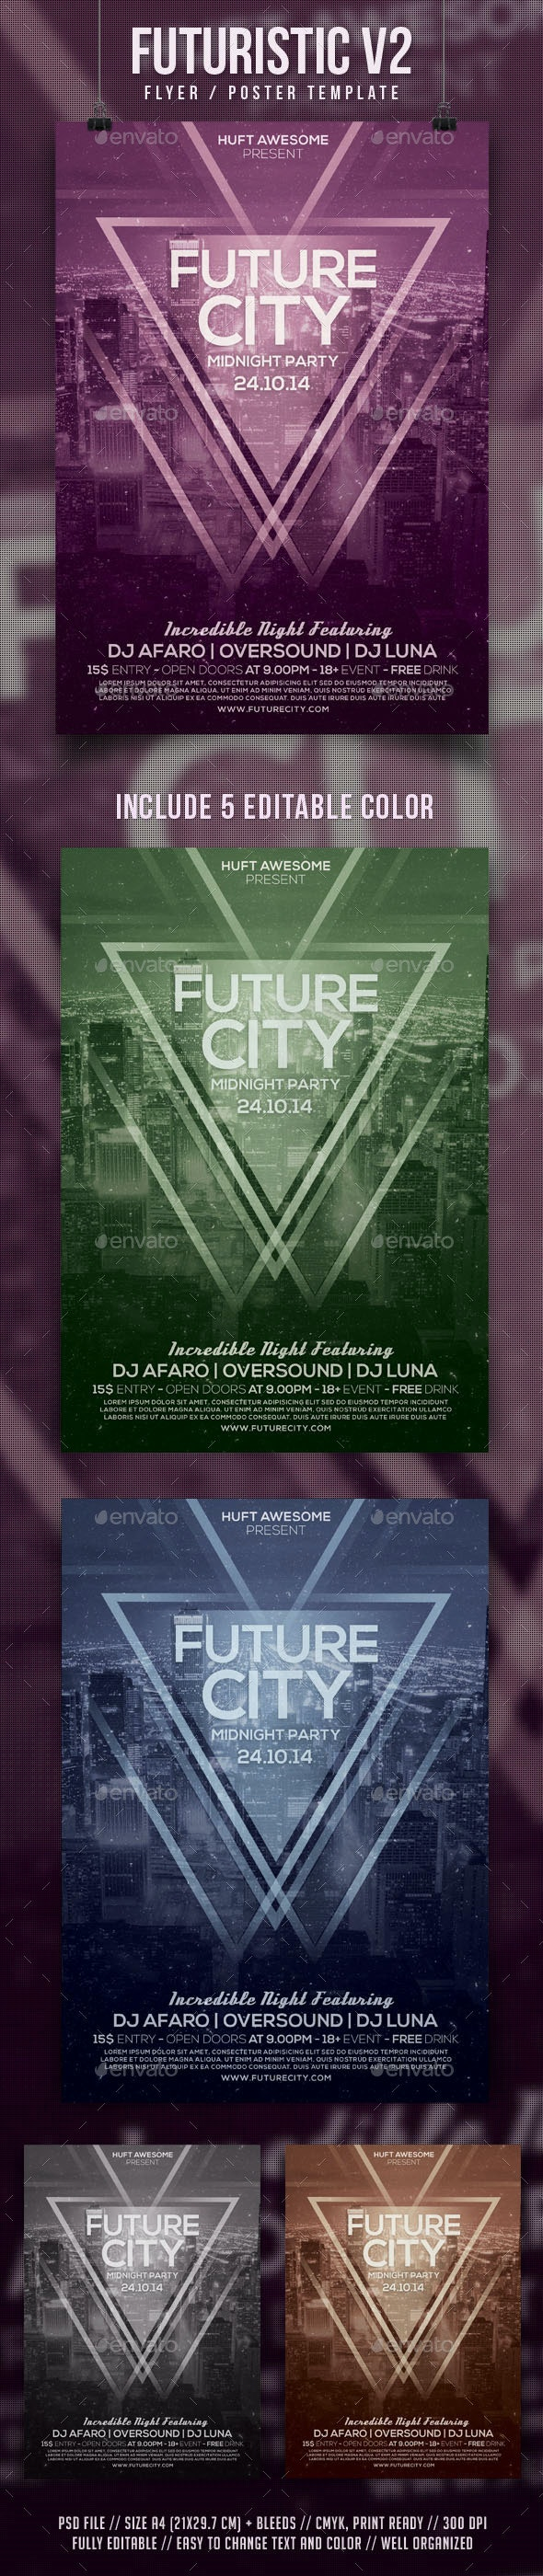 Futuristic V2 Flyer Template - Clubs & Parties Events